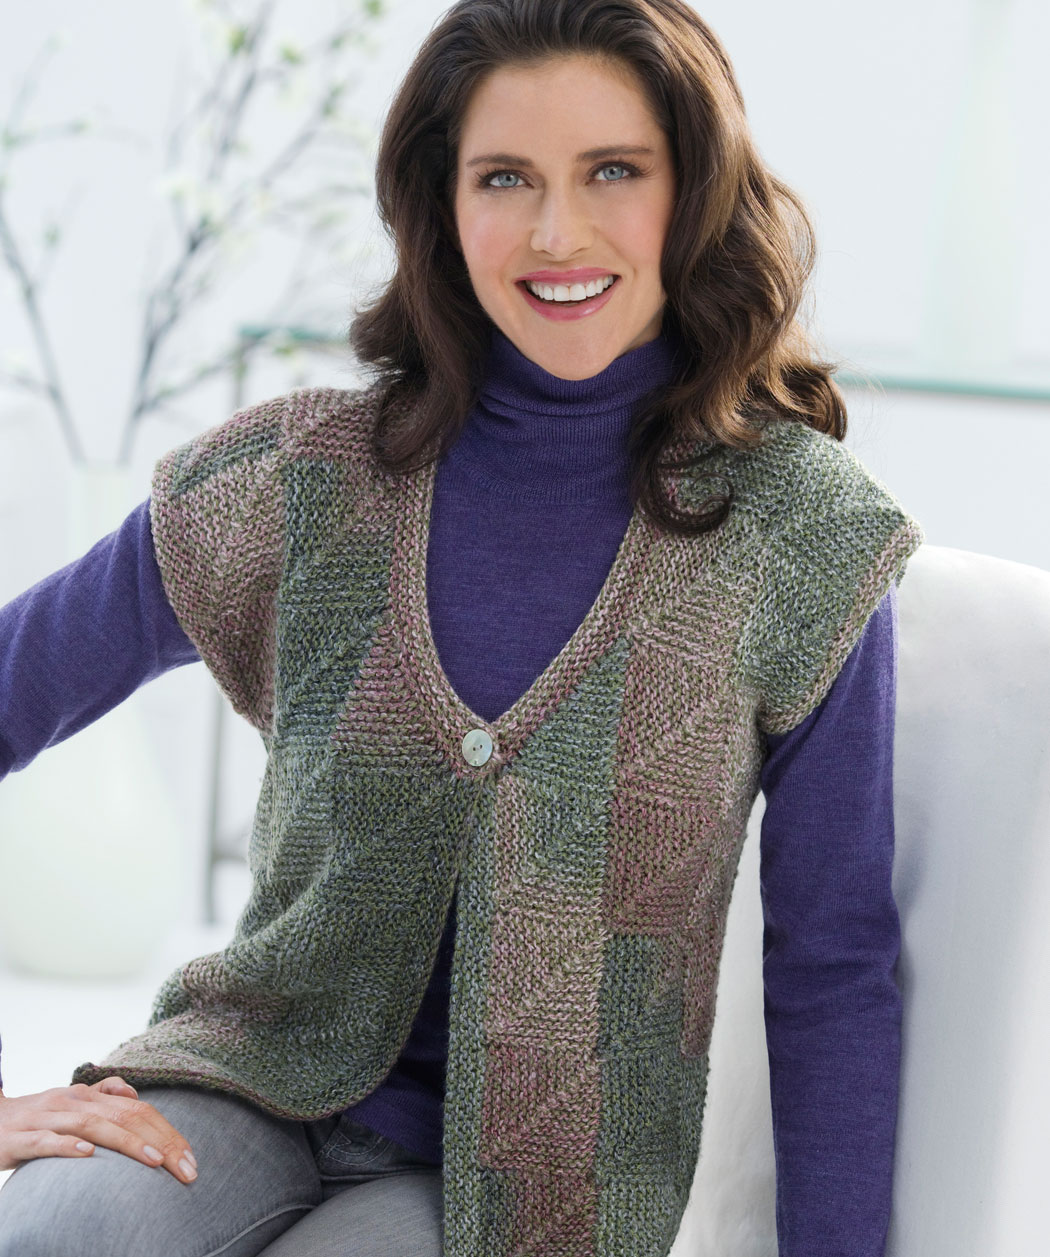 Knitting Patterns Vests : Knitted Vest Patterns A Knitting Blog